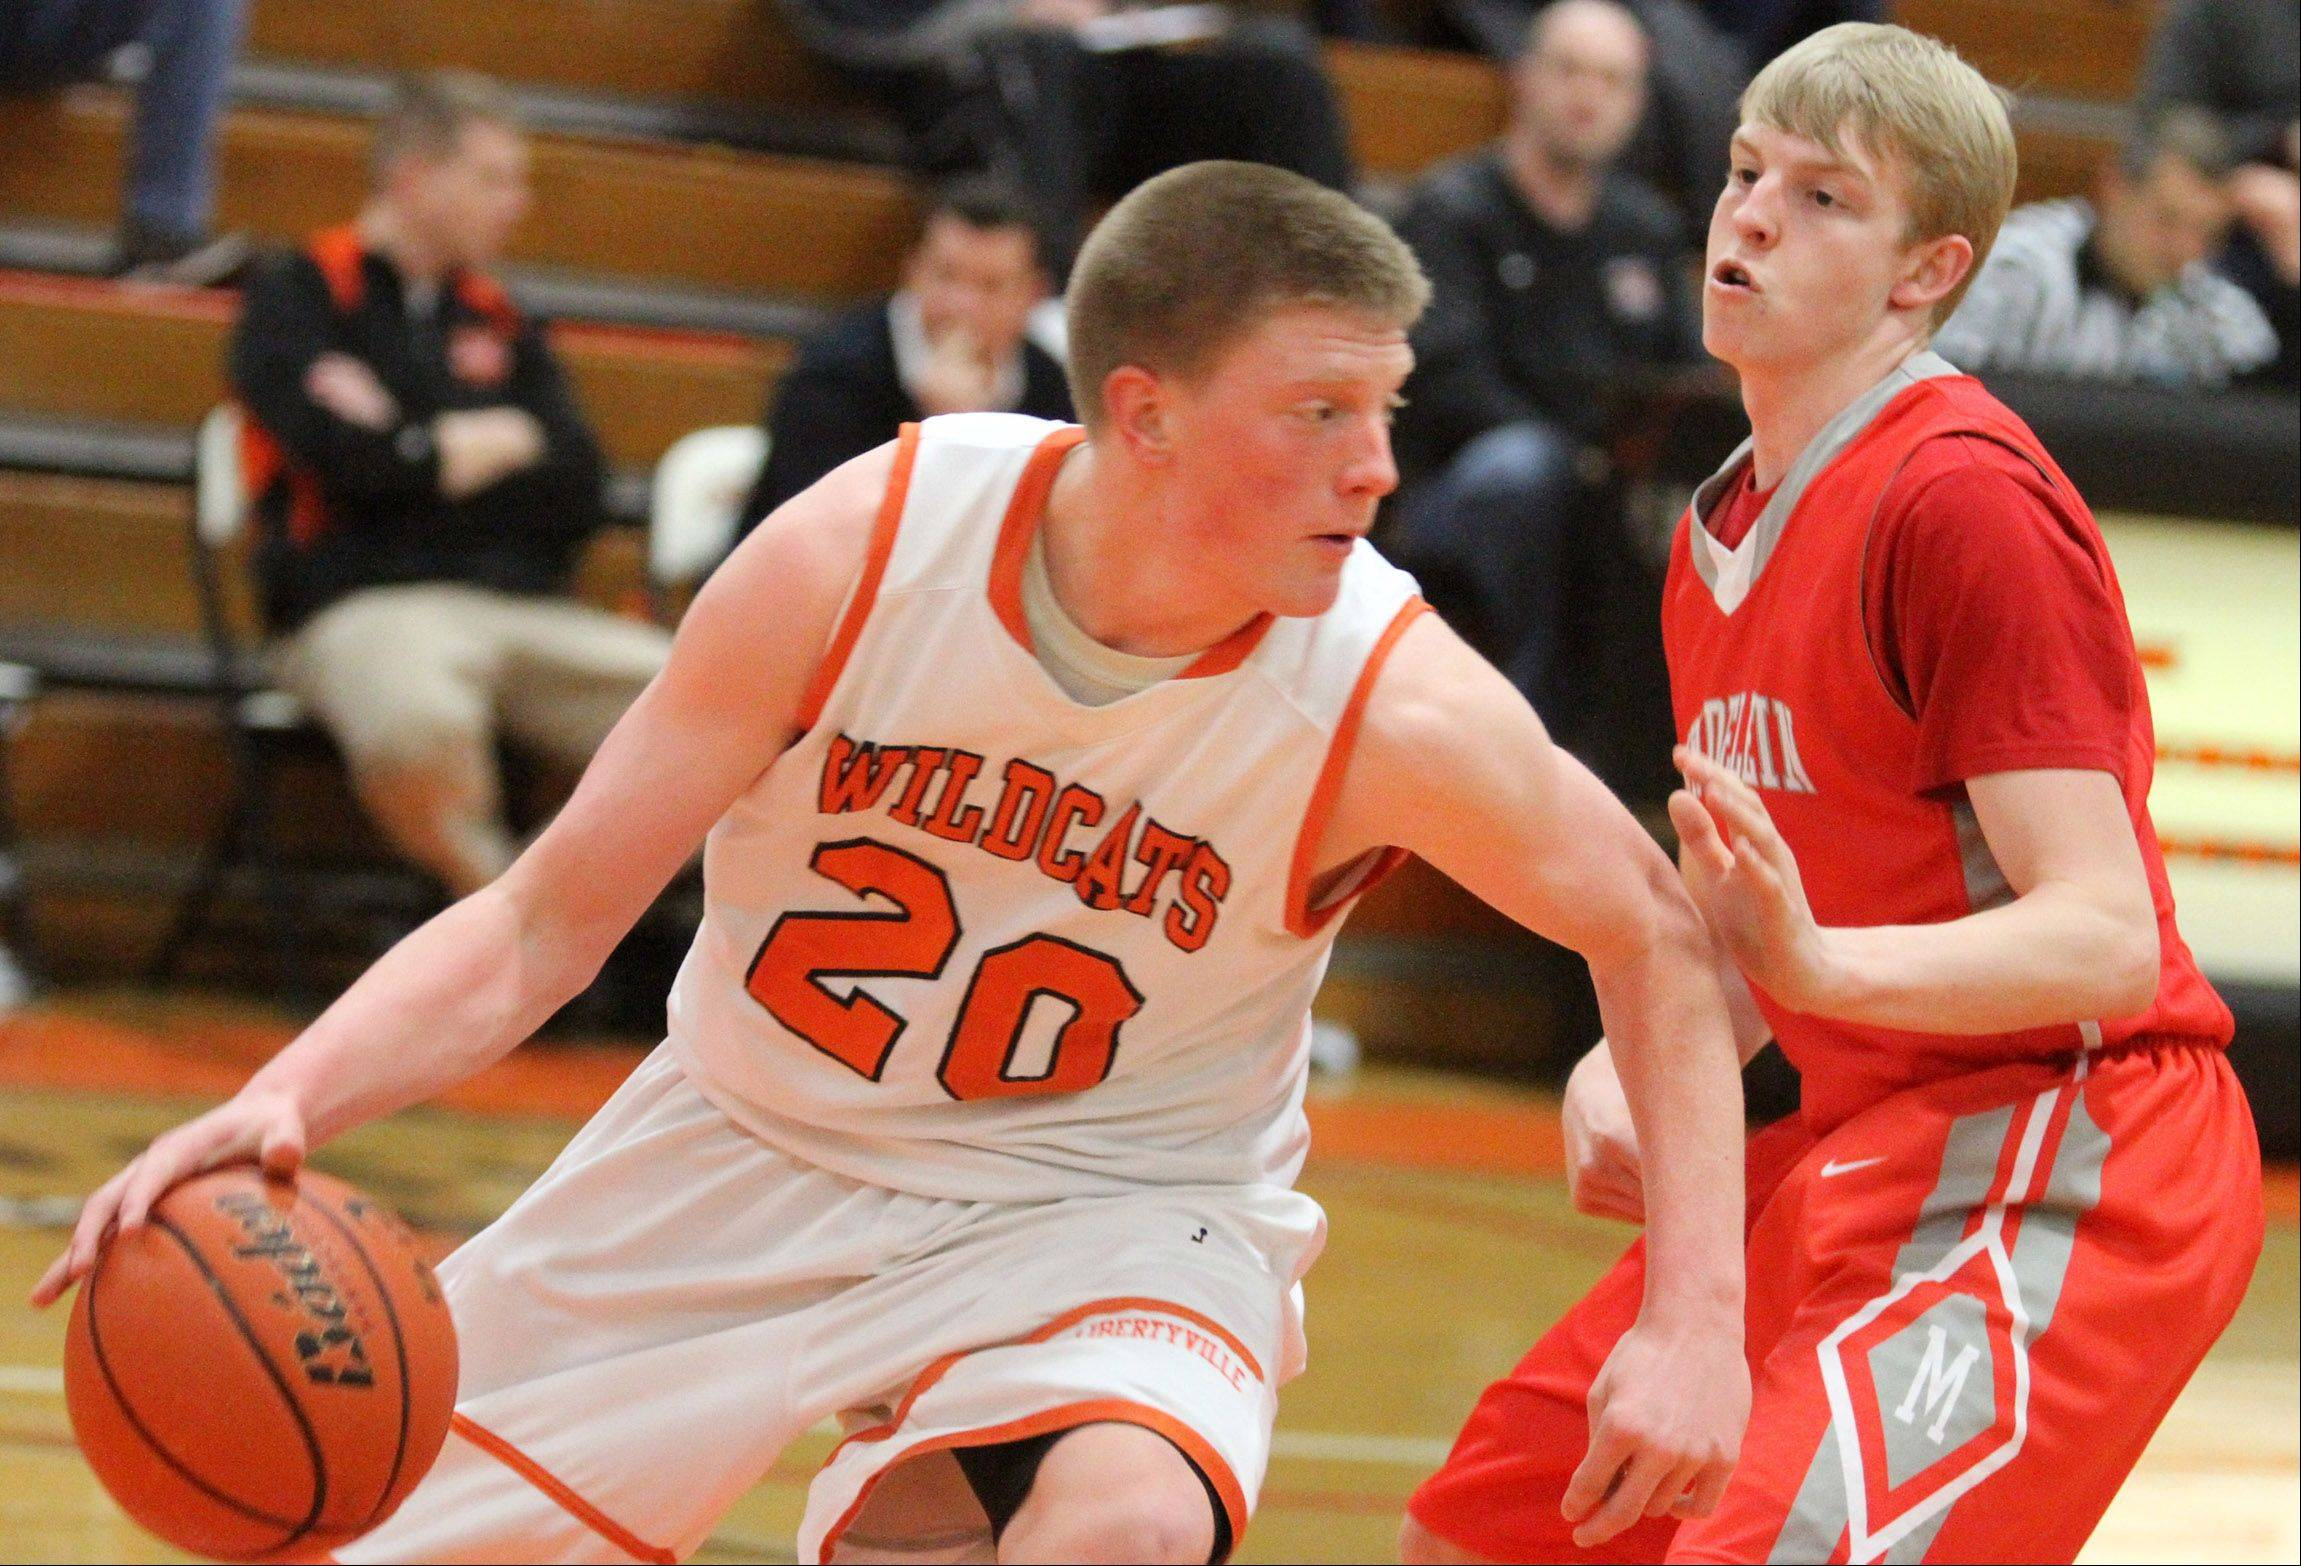 Libertyville guard Jack Lipp looks for running room after grabbing a defensive rebound against Mundelein at Libertyville on Friday.